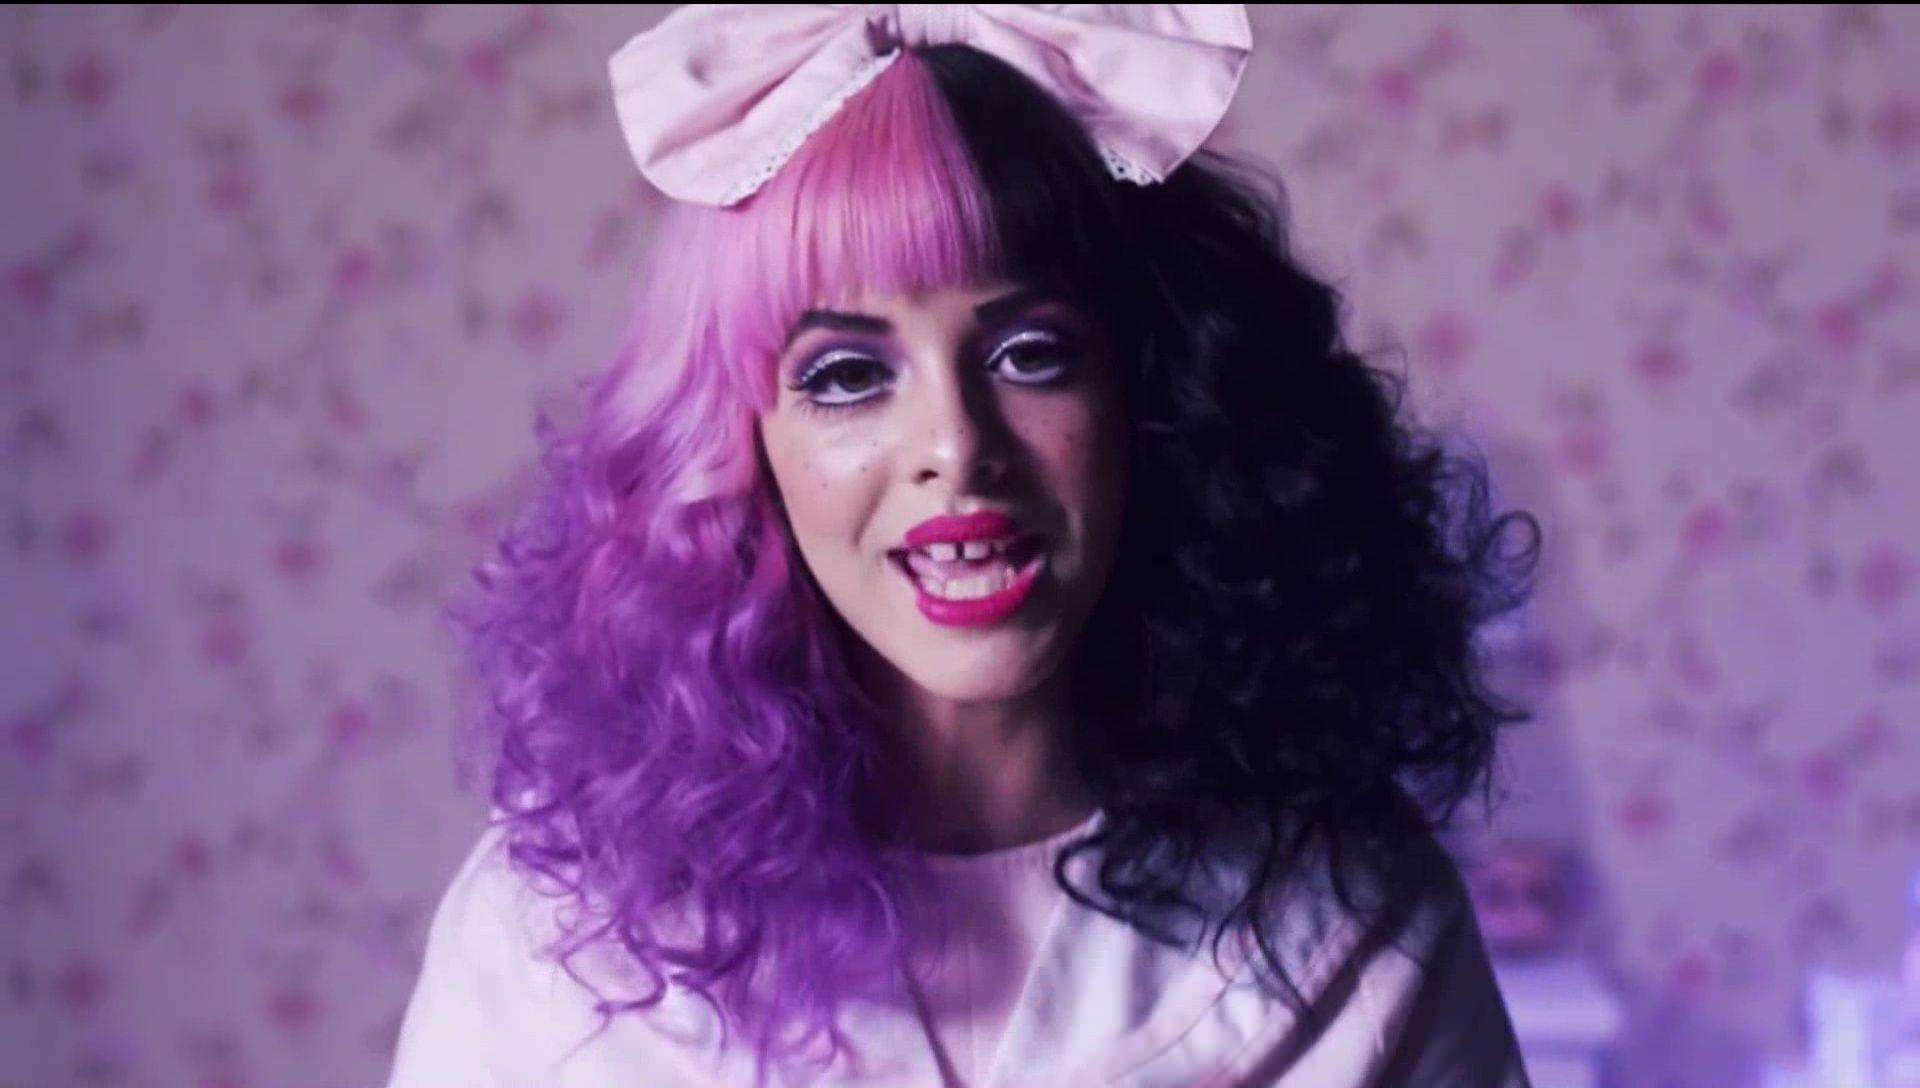 Melanie Martinez Aesthetic 2019 K-12 Wallpapers ...